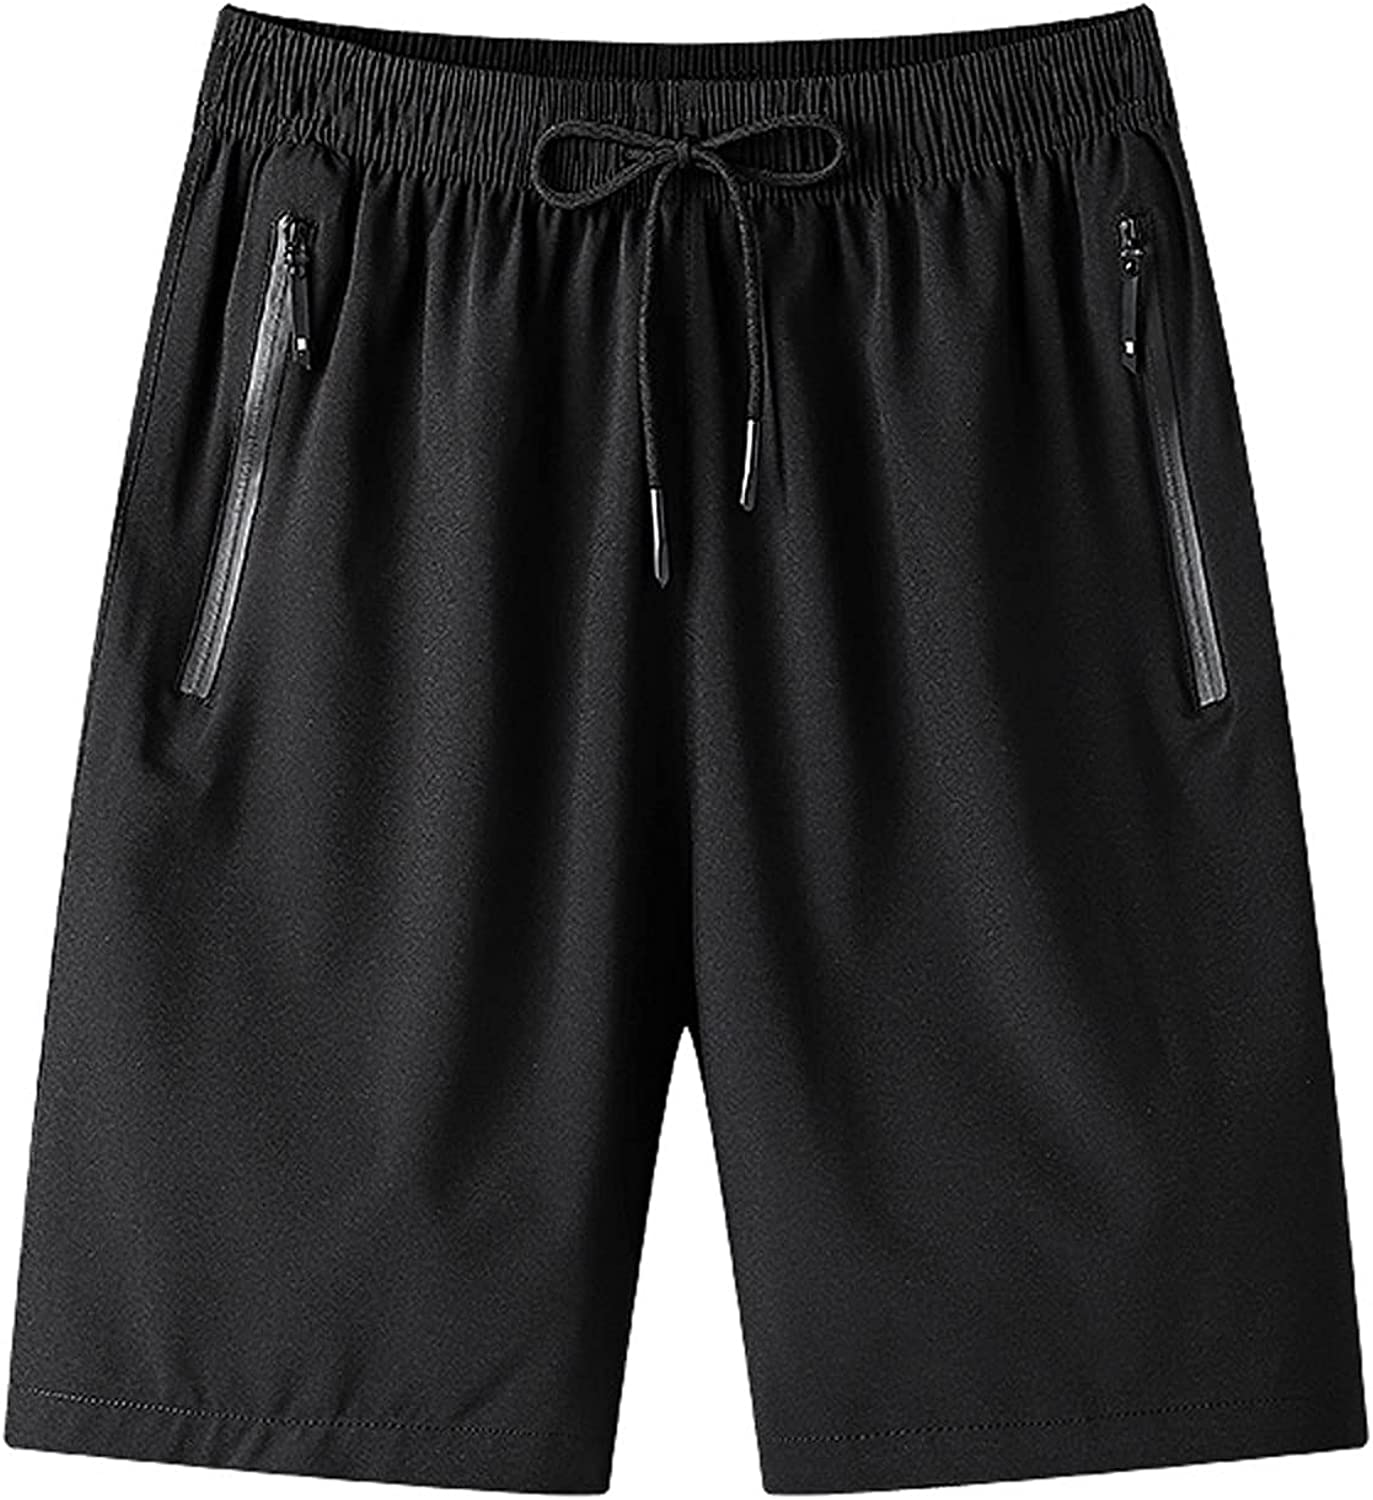 Men's Gym Workout Shorts Quick Dry Bodybuilding Lightweight Athletic Training Running Hiking Jogger with Zipper Pockets